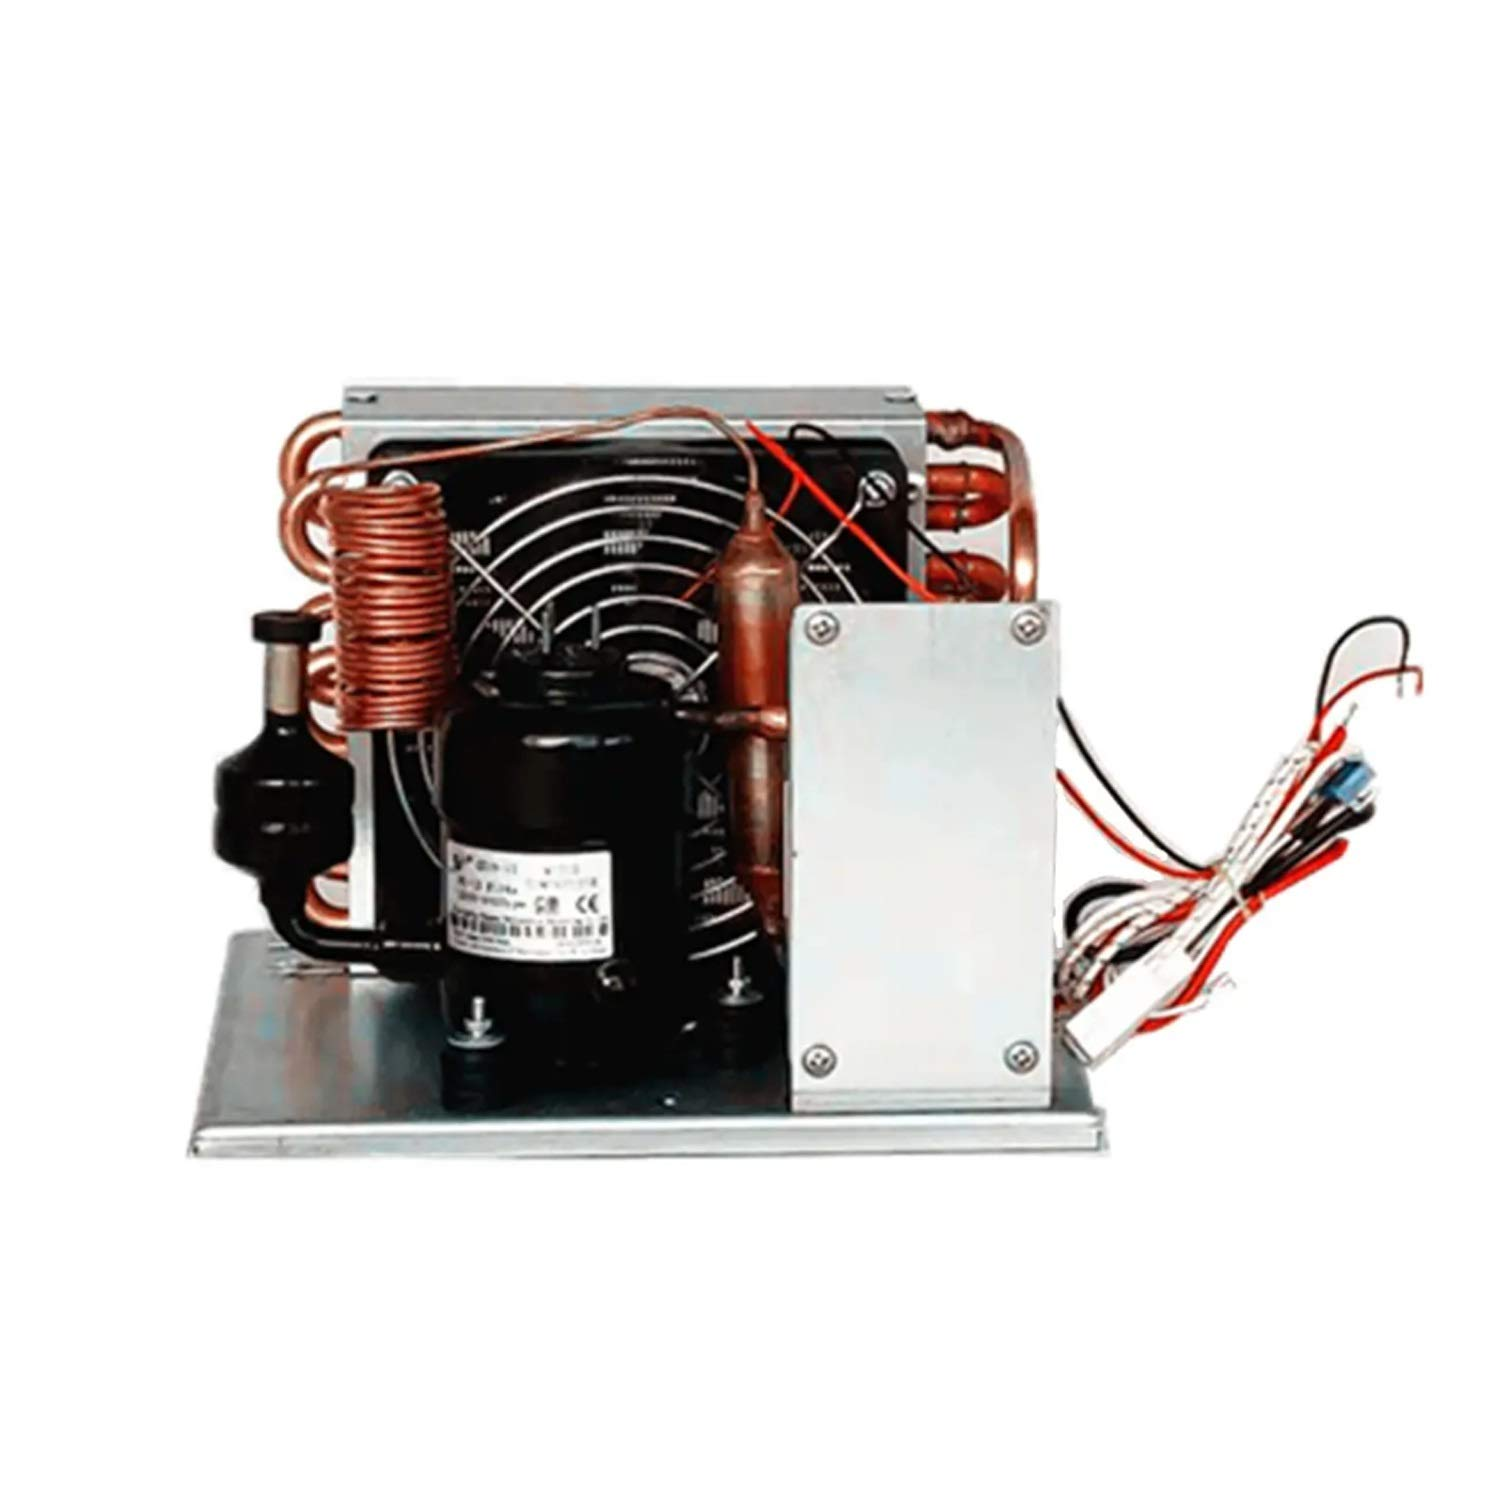 Shengjuanfeng Portable Cooling System Air Cooled Condensing Unit DC 12V 106-360W with R134A Refrigerant Direct Refrigeration Without Evaporator Small Cooling Unit